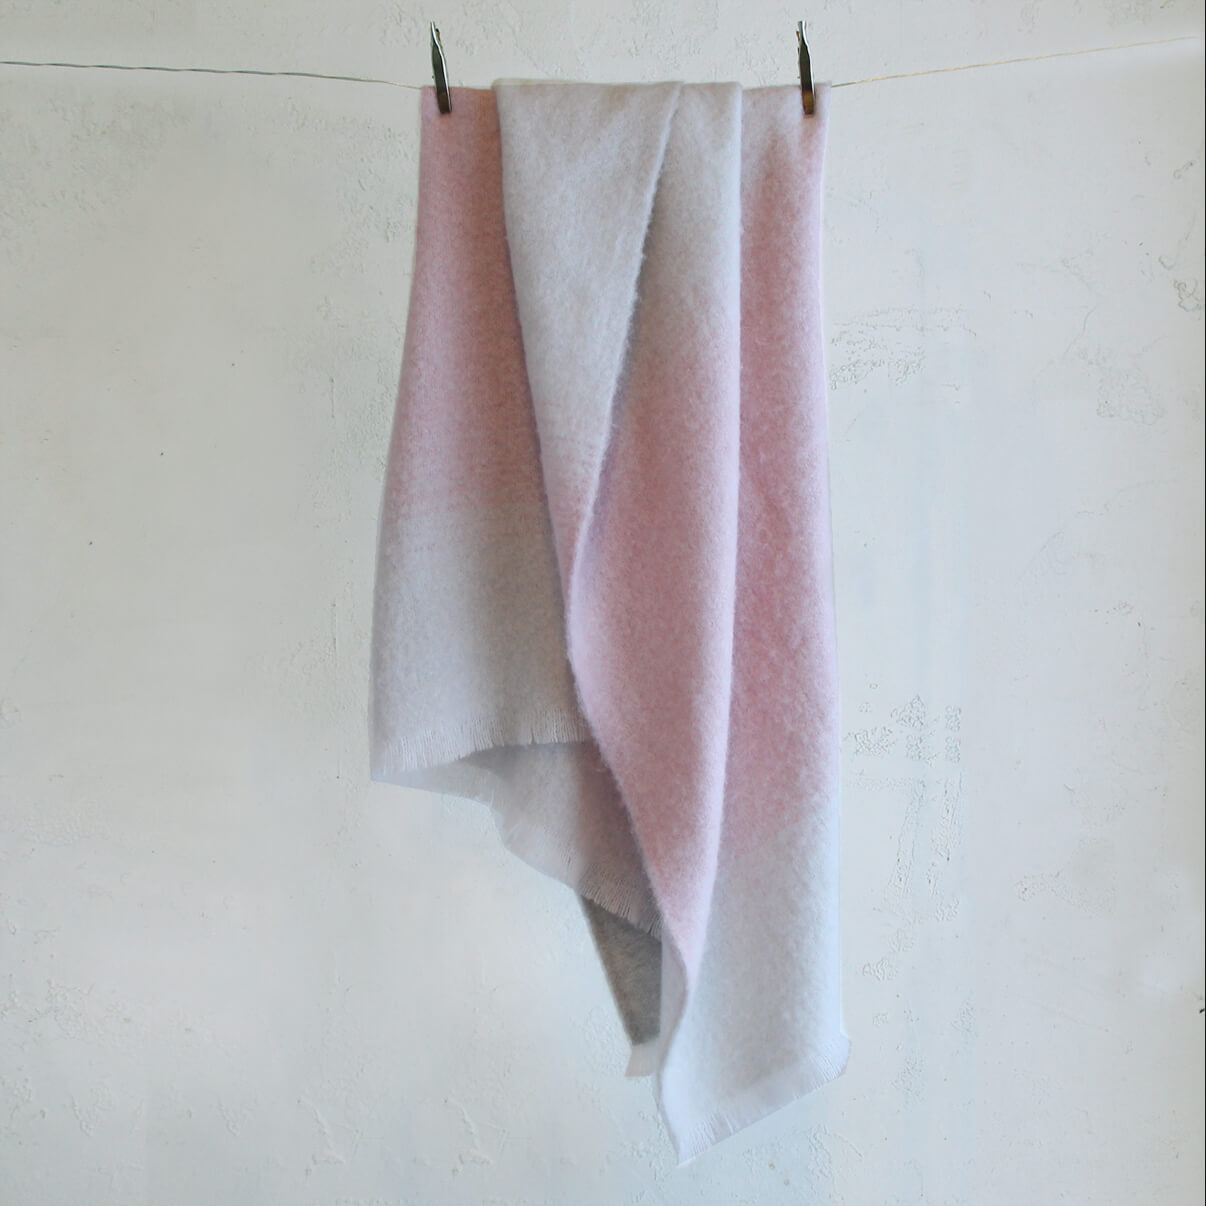 ST ALBANS ALPACA BLANKET THROW  |  PINKSTONE